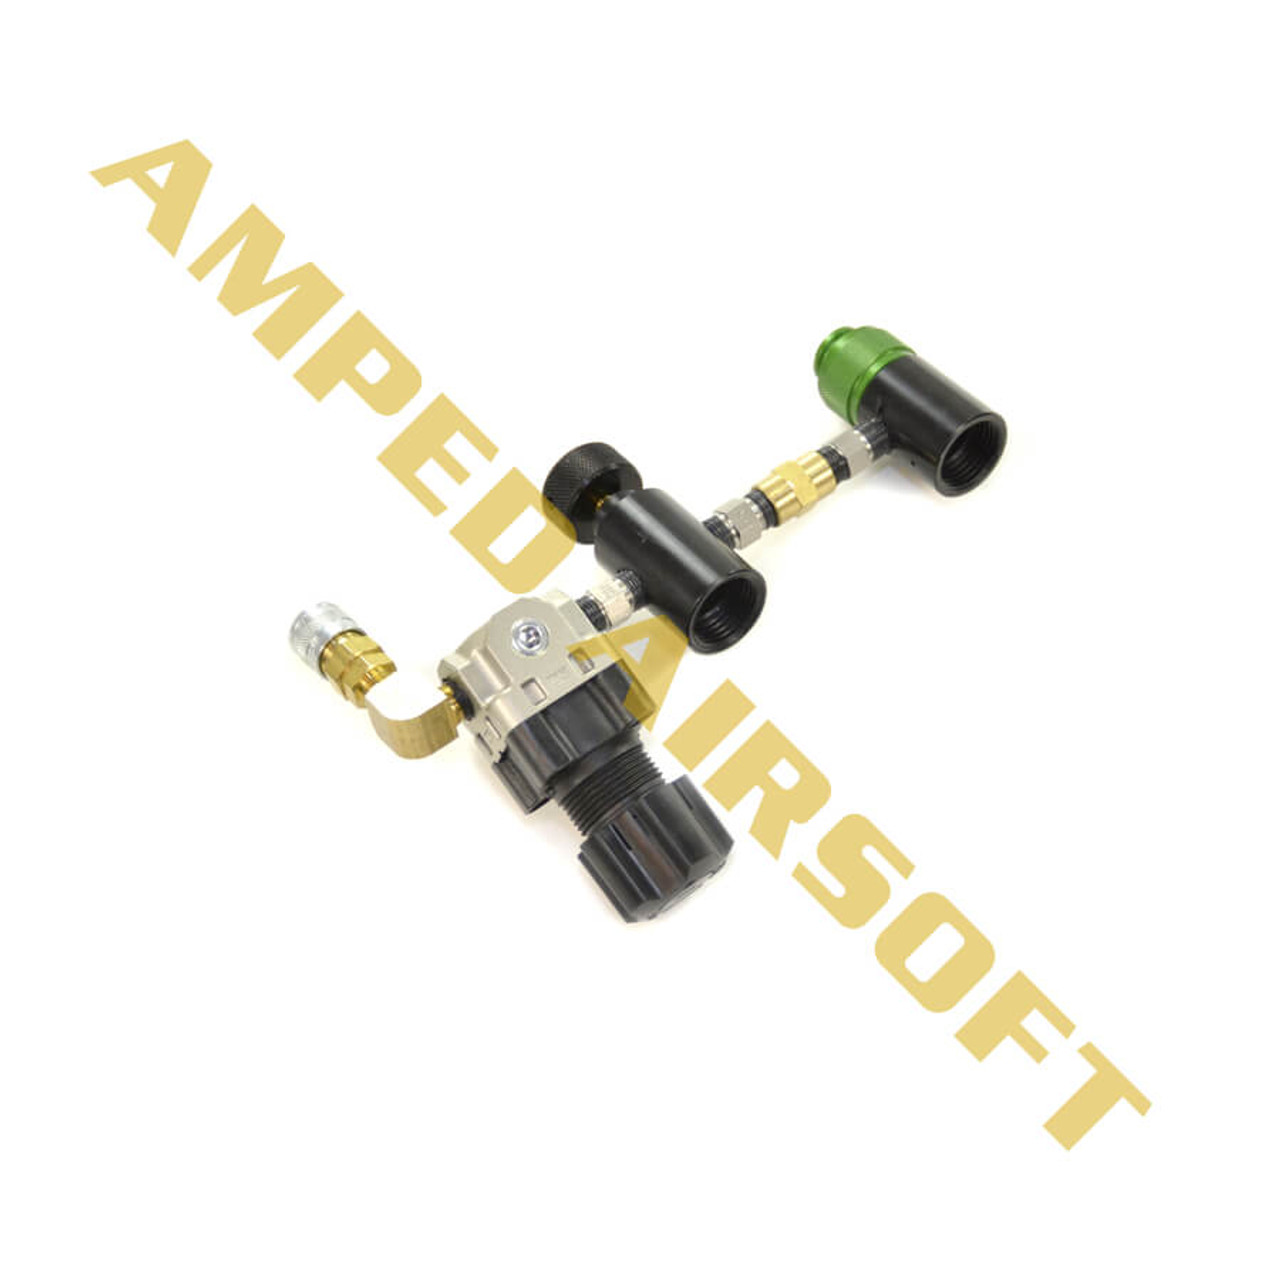 Low Profile Rig (for 13/3000 tanks)